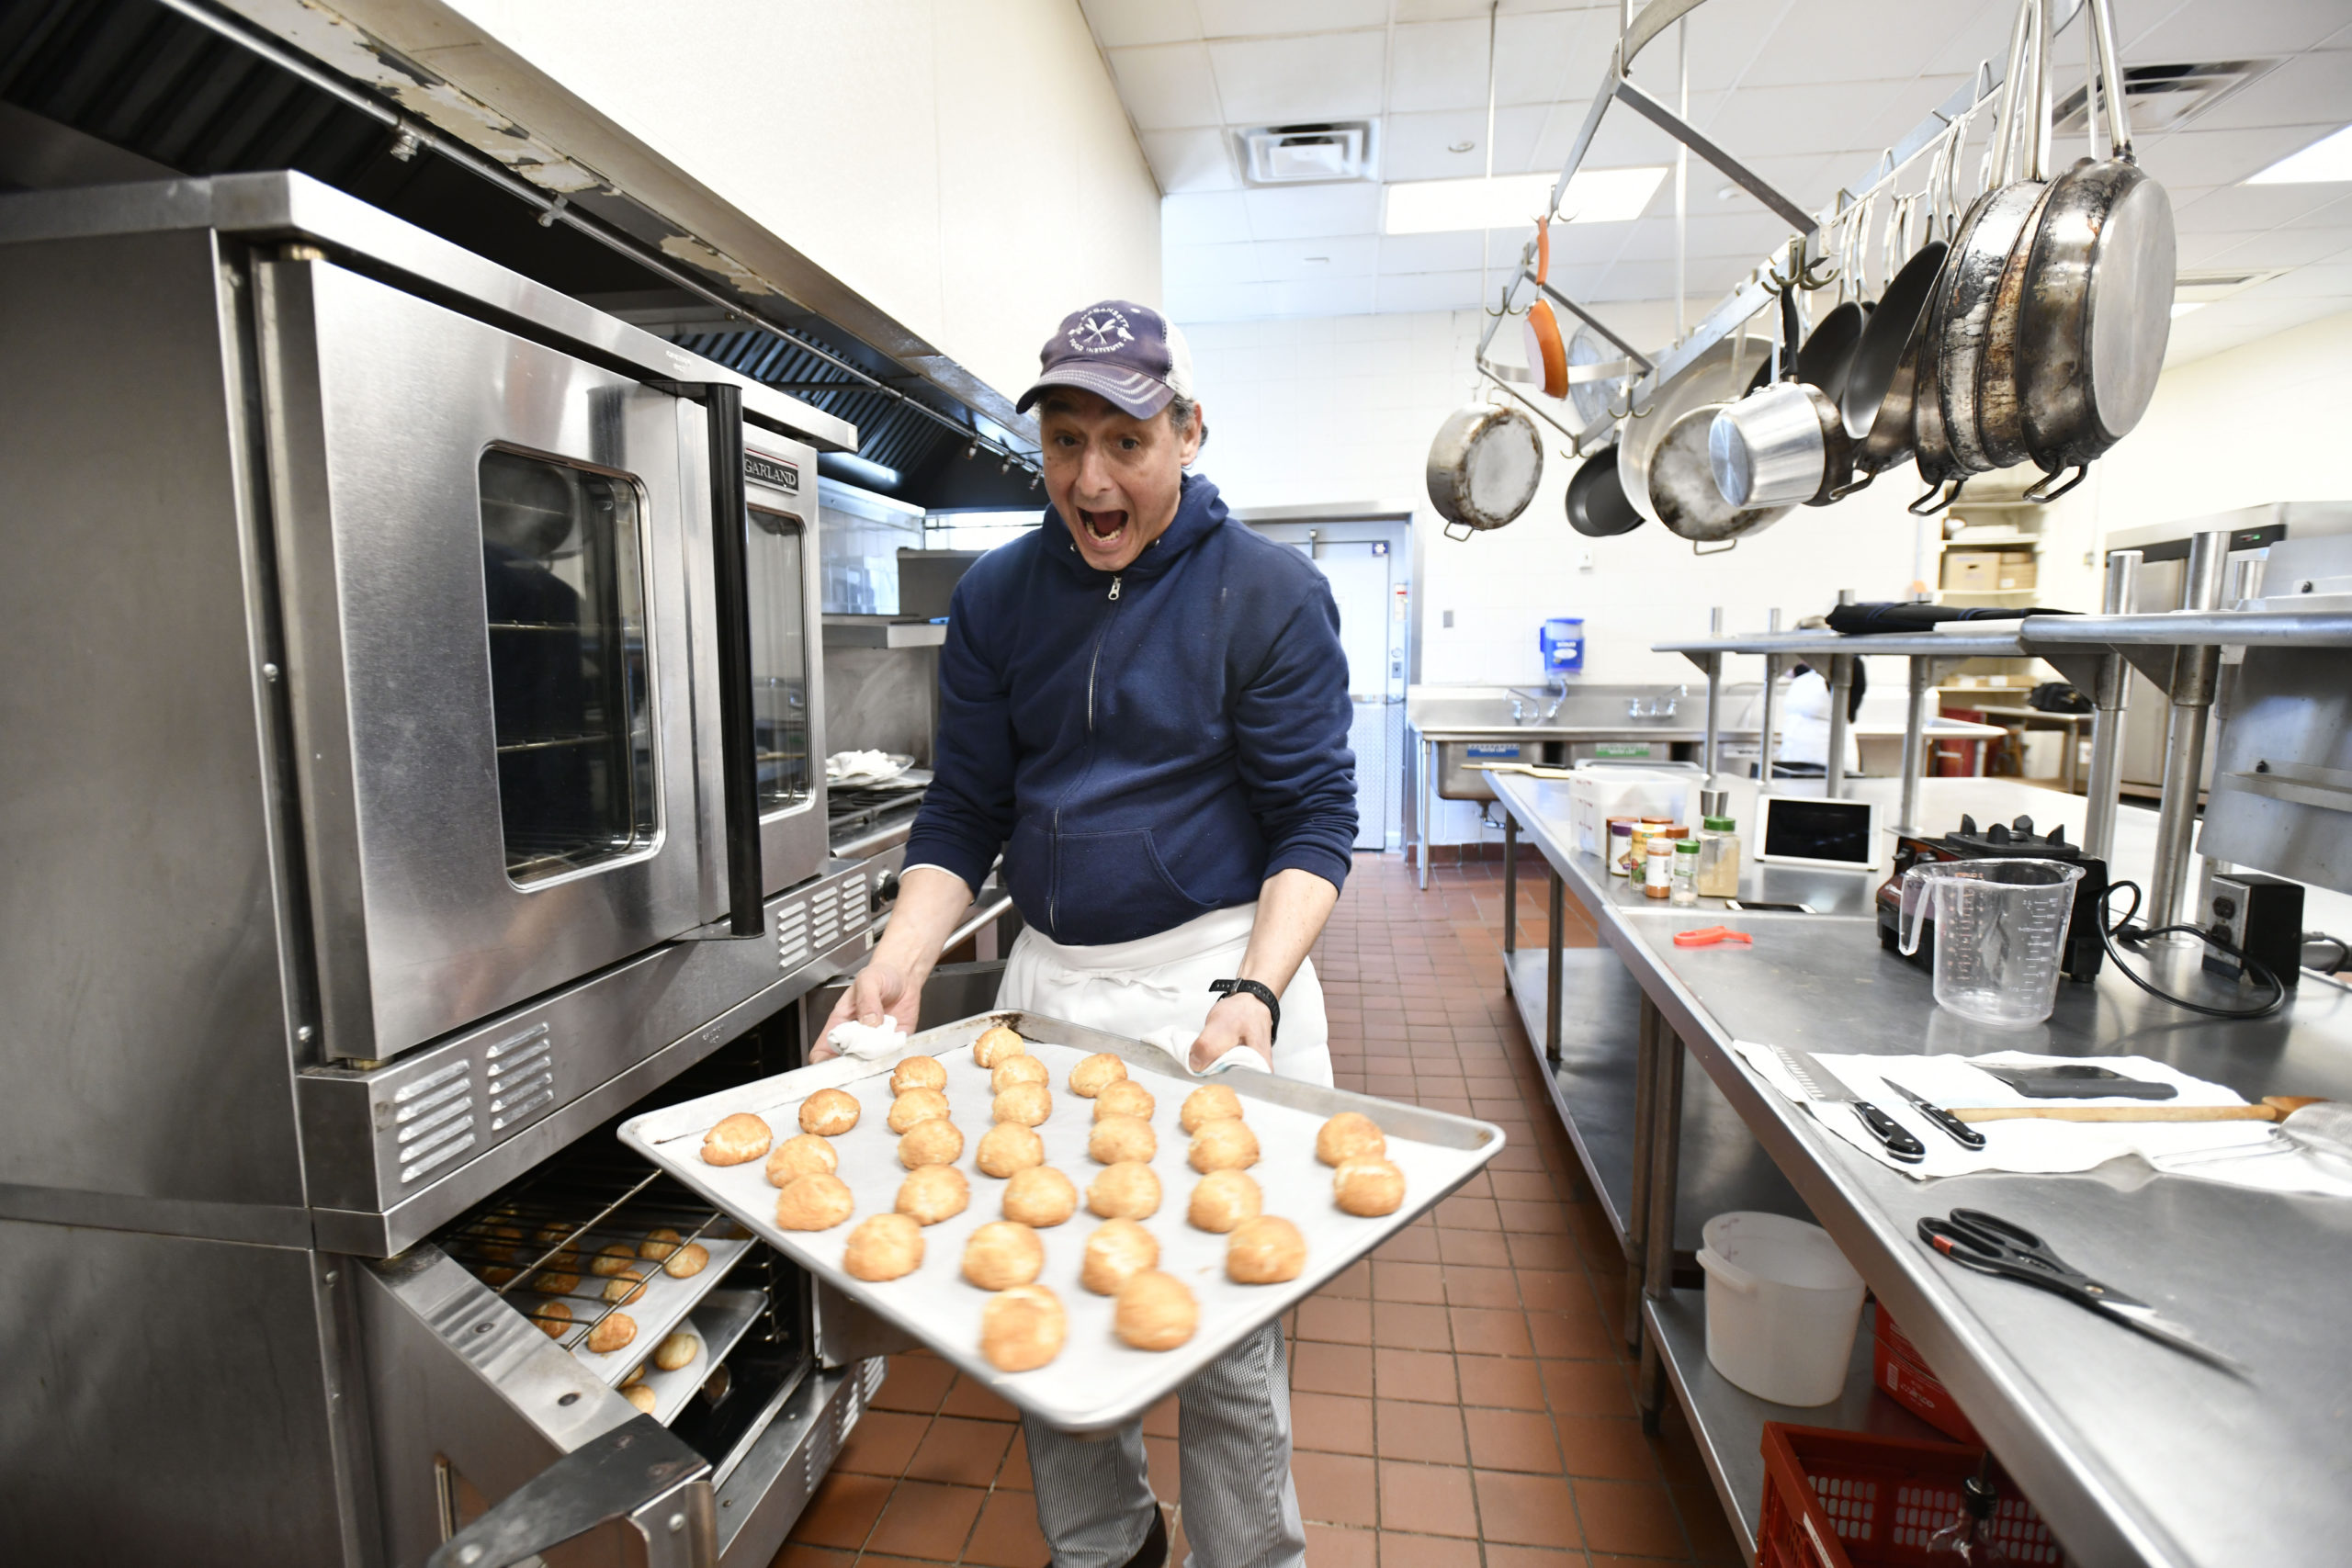 Robert Curreri of Robert's Bakestand in the kitchen at the Eat End Food hub.    DANA SHAW